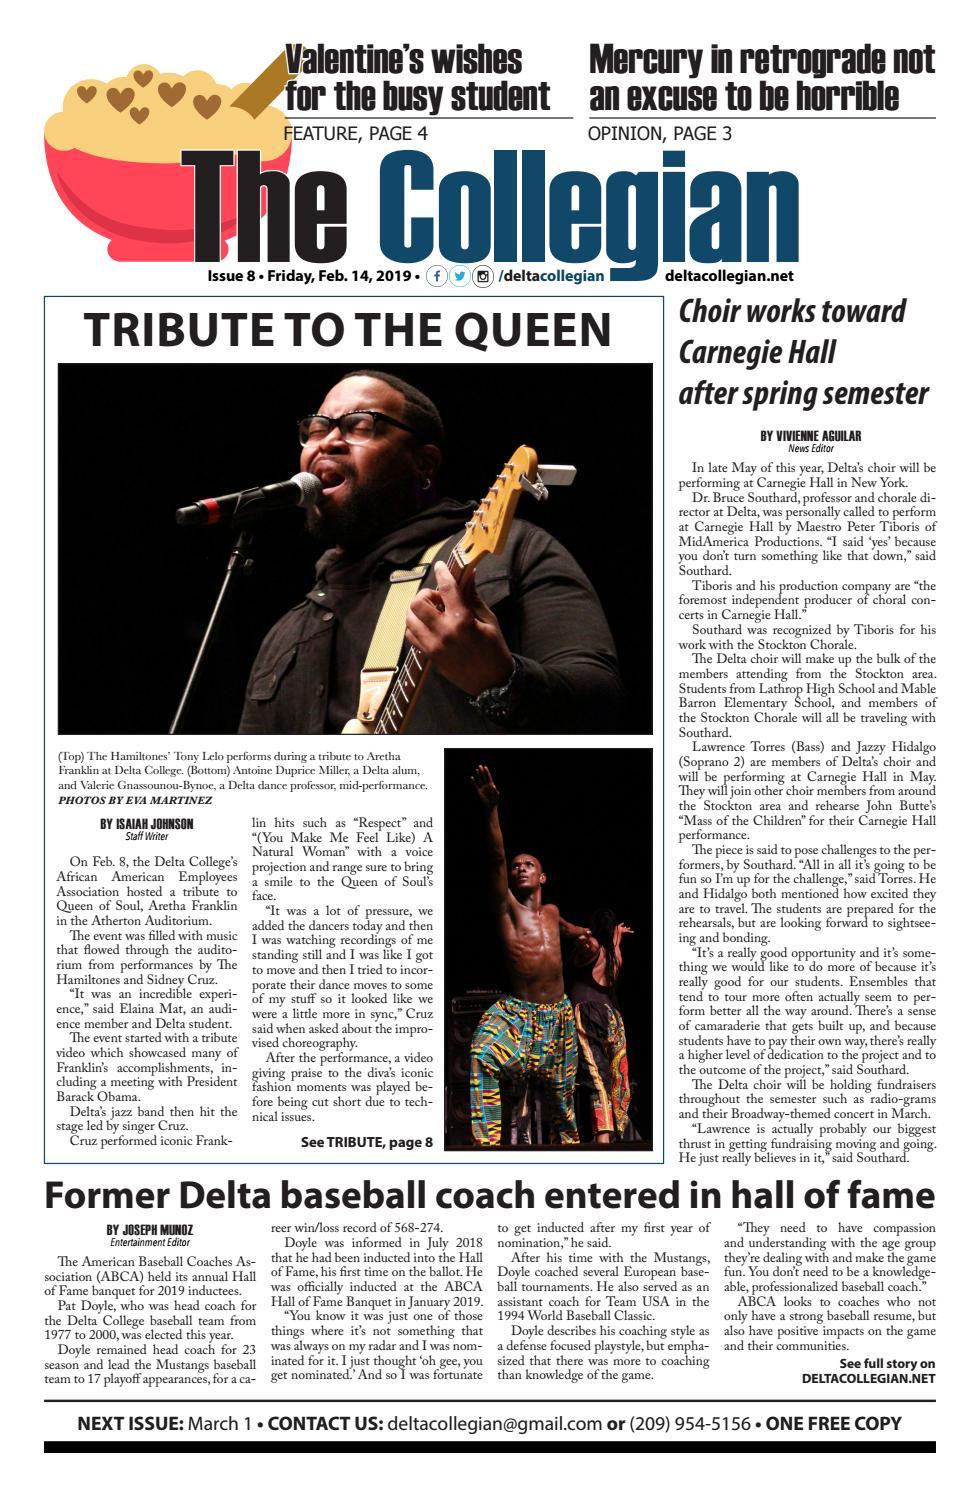 The Collegian — Published Feb  14, 2019 by The Collegian - issuu